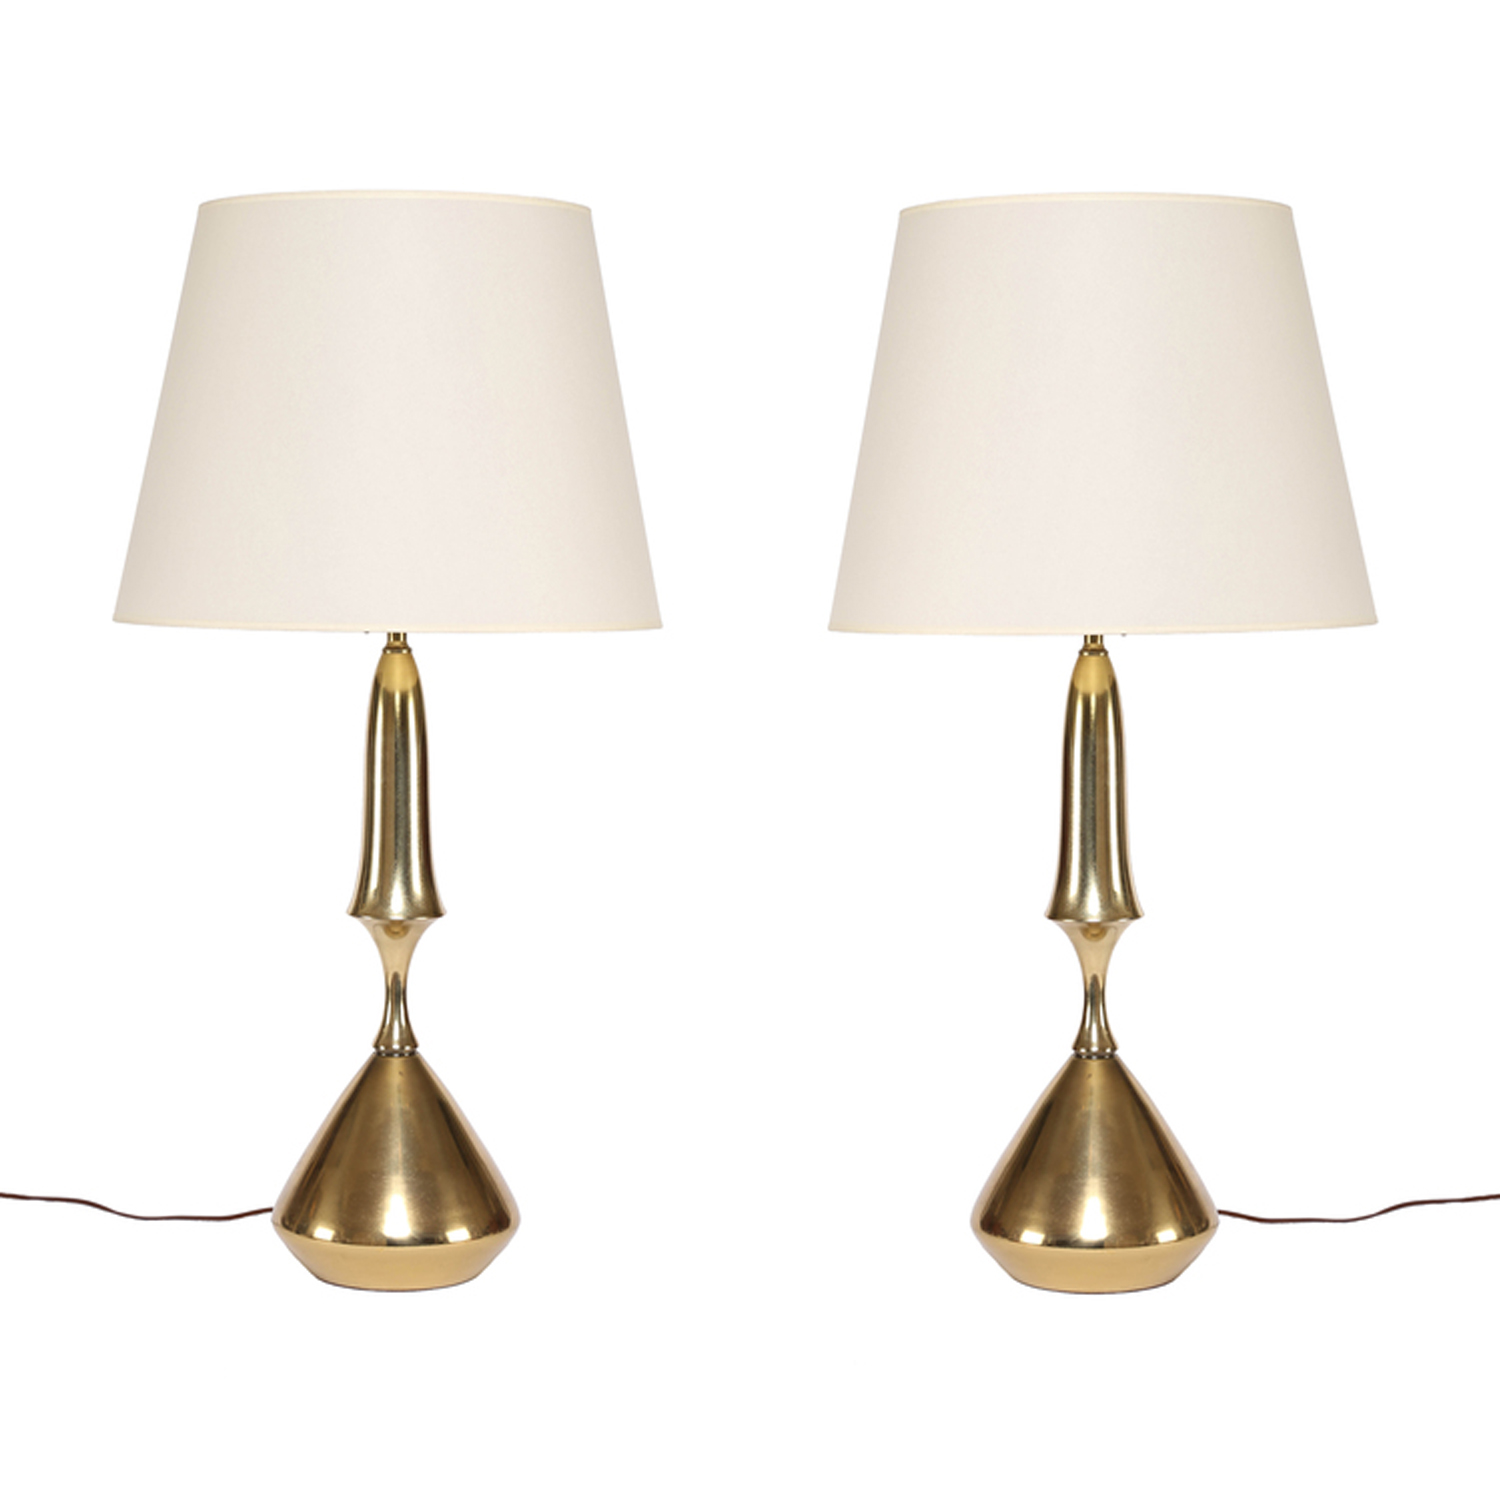 Vintage Table Lamps Vintage Brass Table Lamps